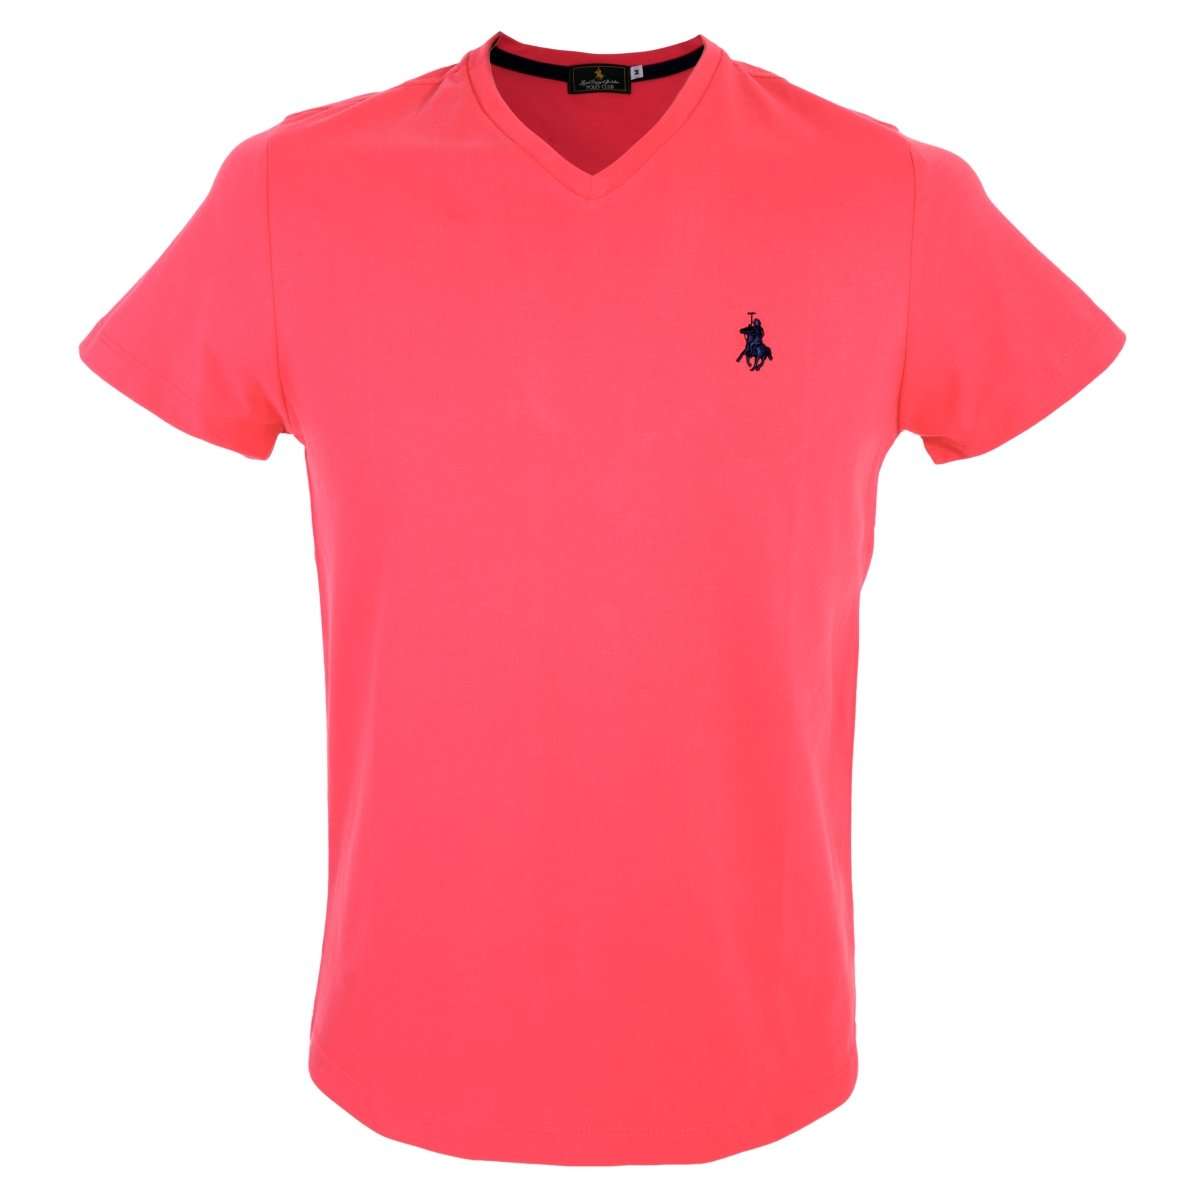 e4b18502ea1ac PLAYERA CUELLO V POLO CLUB